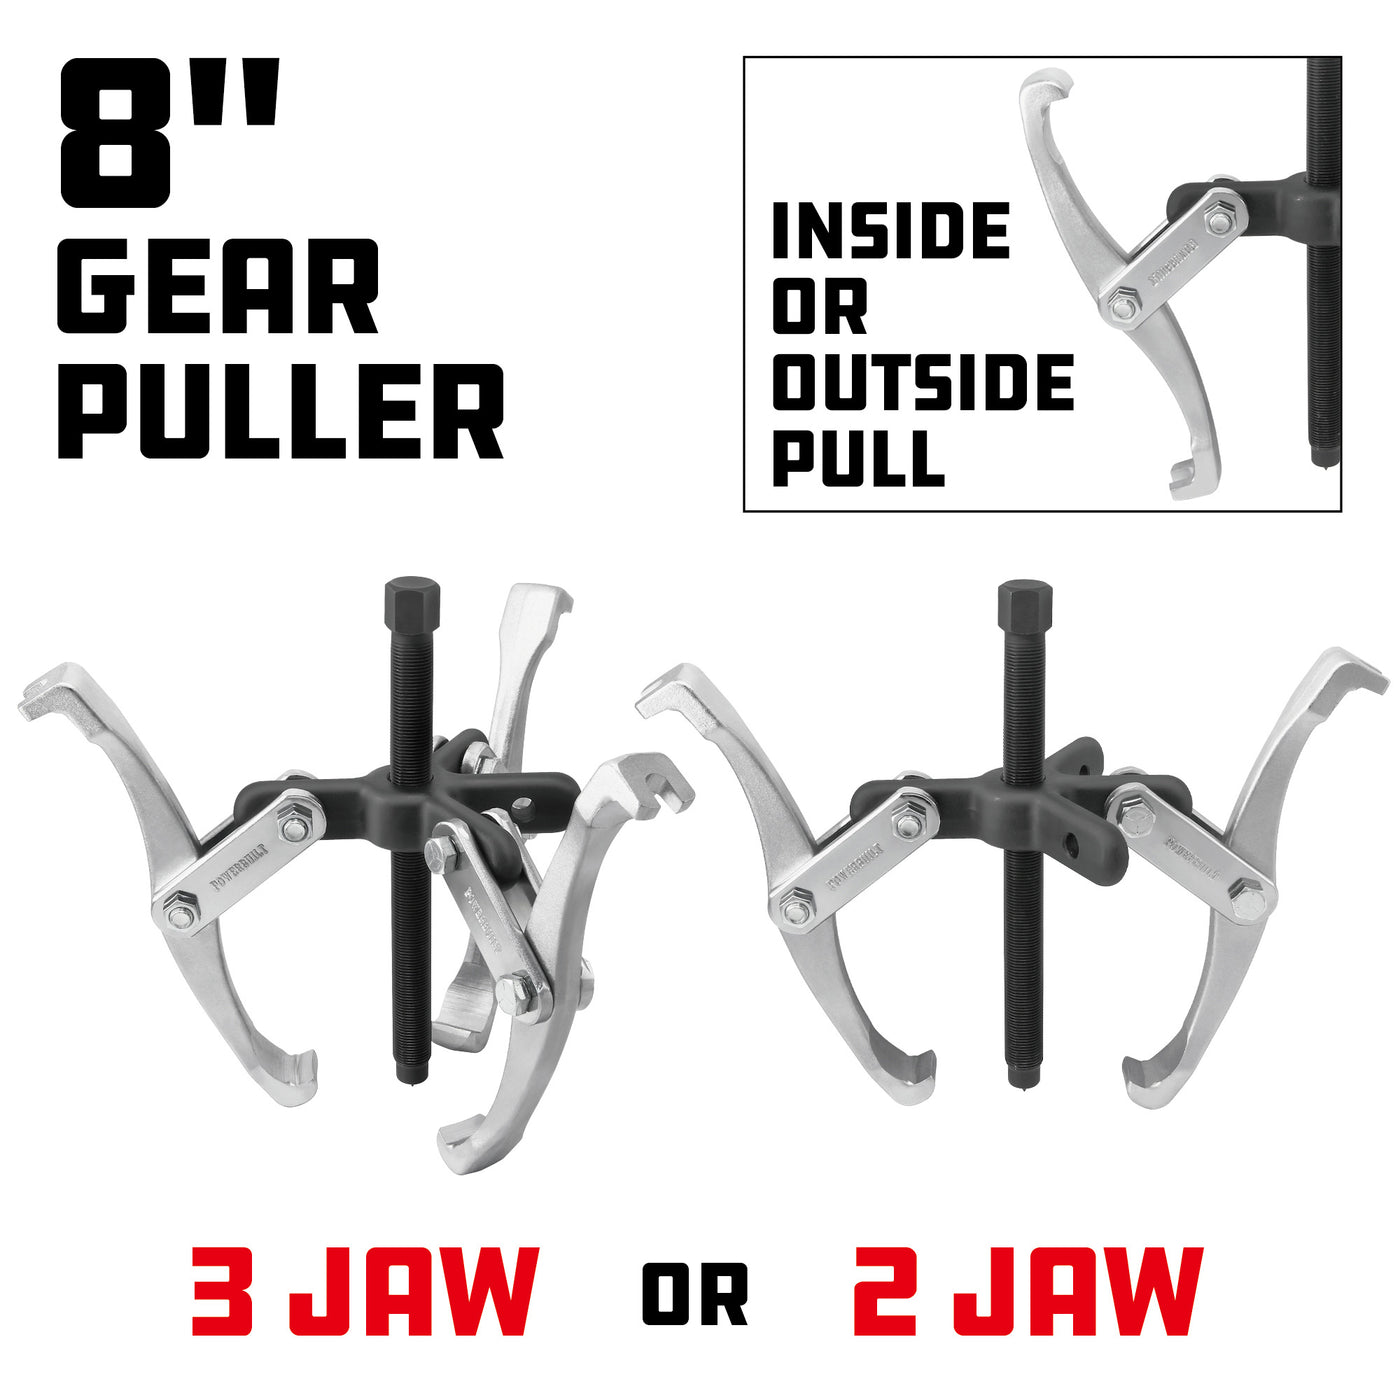 8 3 Jaw Hand Gear Pully Puller Pulling Tool